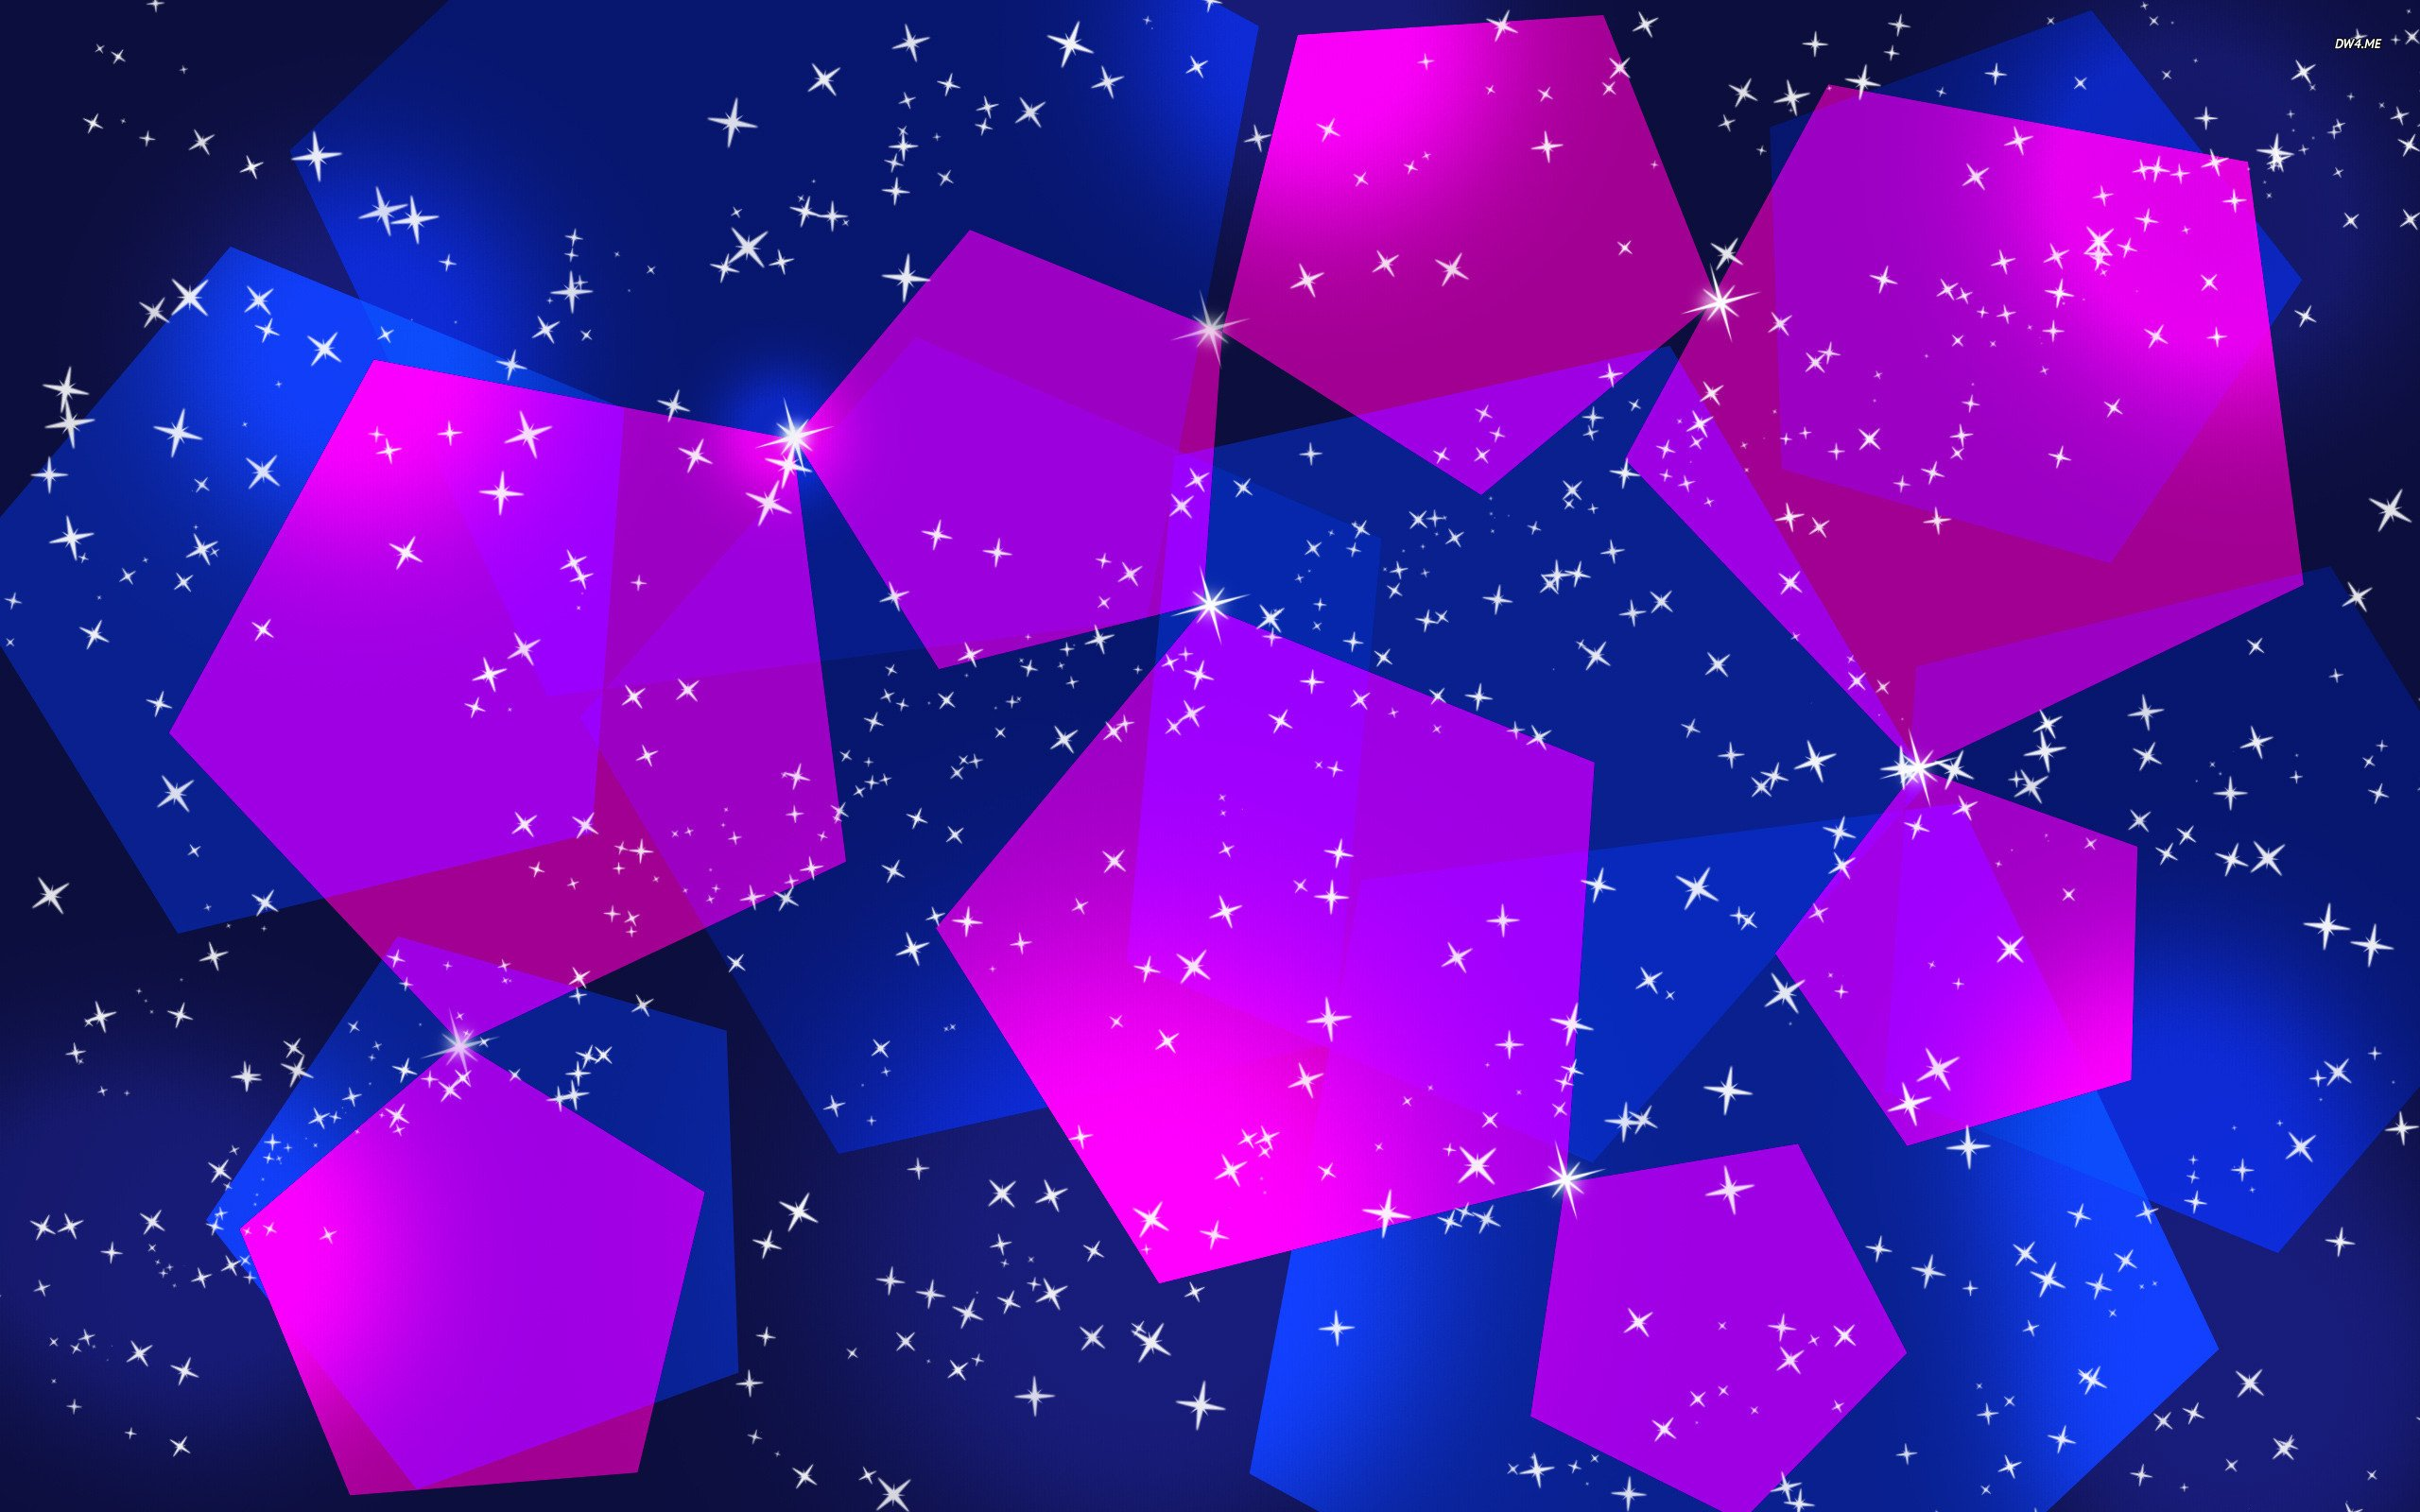 Free Download Blue And Pink Pentagons Wallpaper Abstract Wallpapers 497 2560x1600 For Your Desktop Mobile Tablet Explore 46 Blue And Pink Wallpaper Blue Color Background Wallpaper Blue And Brown